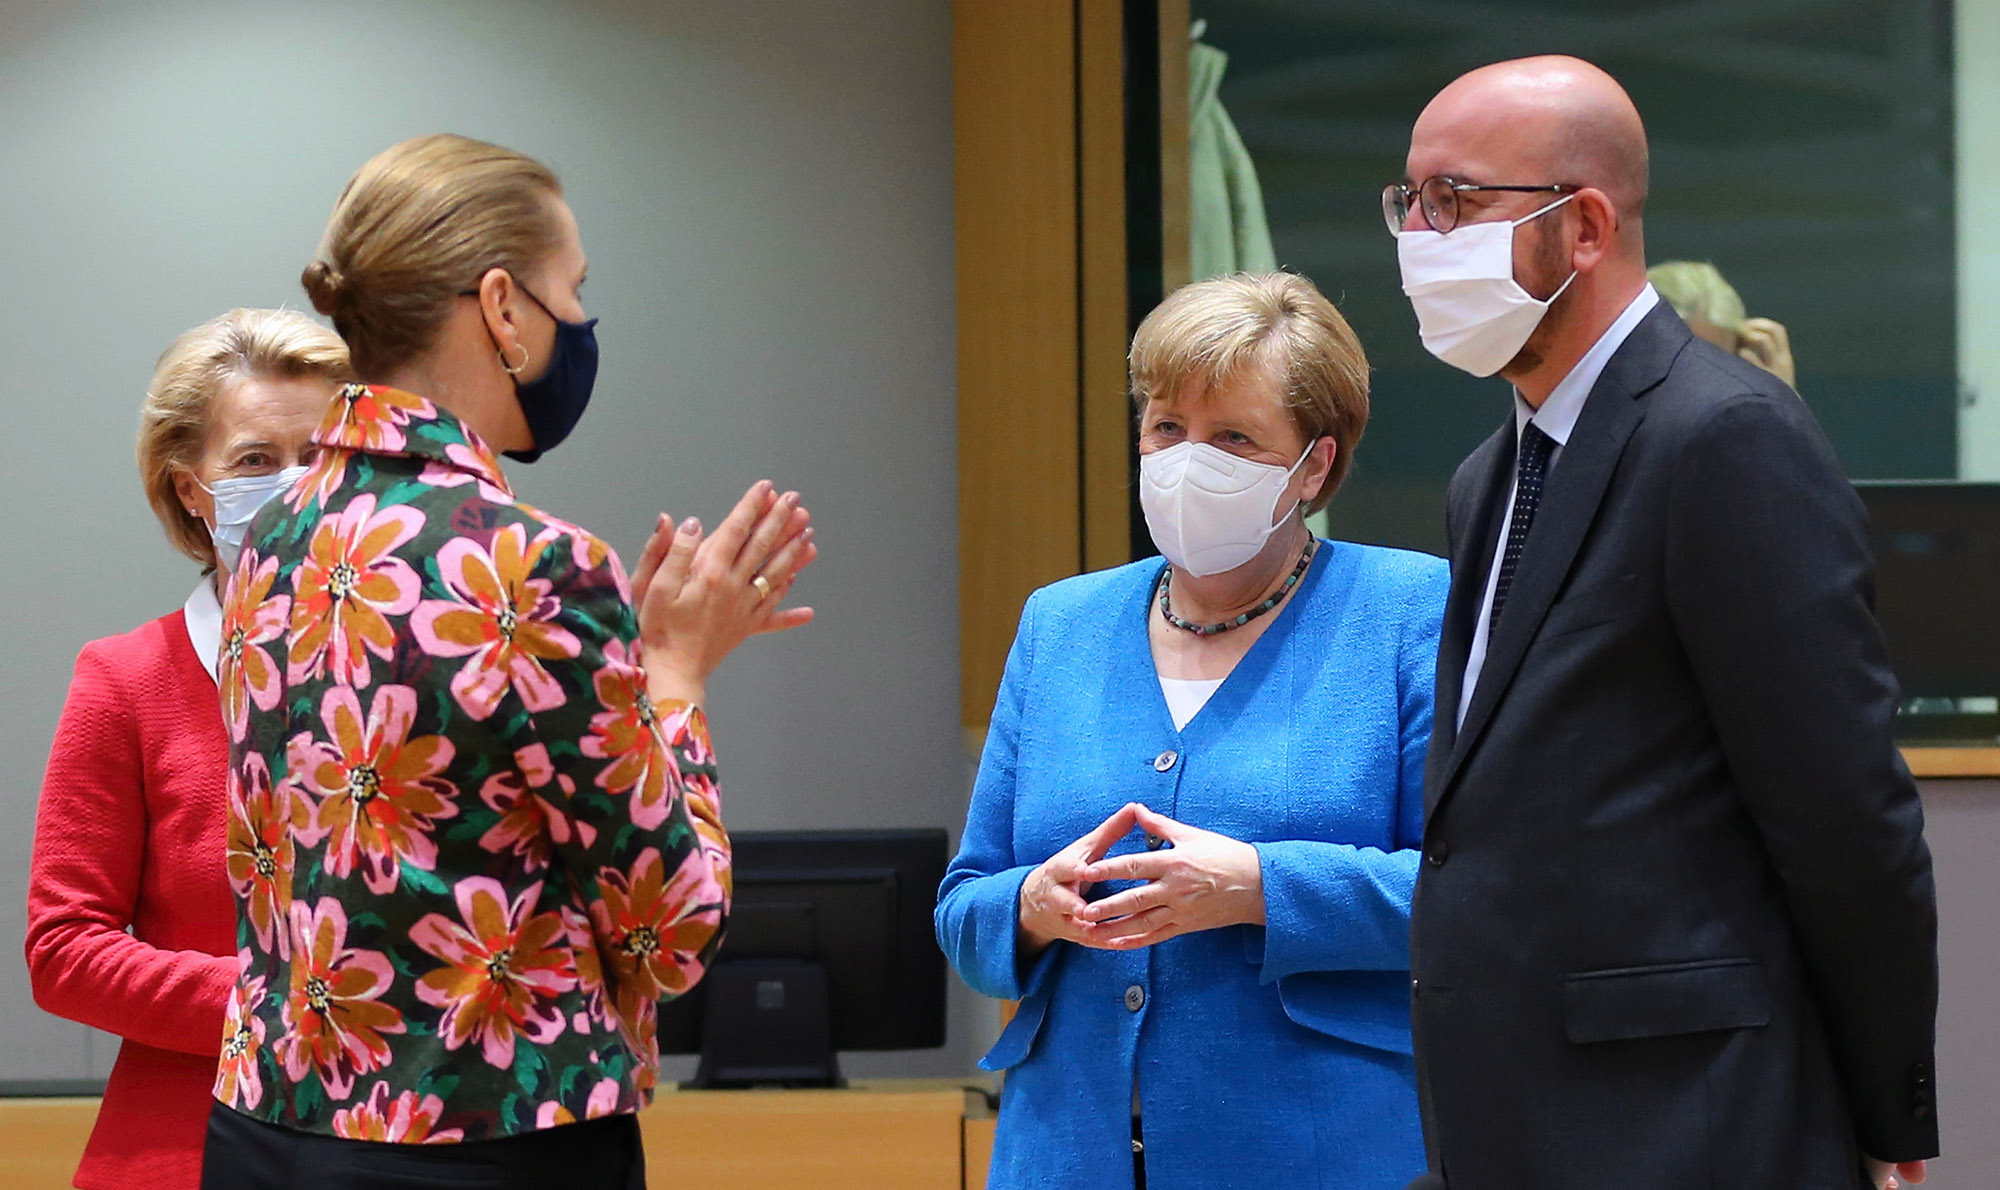 German Chancellor Angela Merkel (2nd R), President of the European Council Charles Michel (R) and Prime Minister of Denmark Mette Frederiksen (L) and Prime Minister of Portugal Antonio Costa (L) attend EU summit to discuss EU's long-term budget and coronavirus recovery plan in Brussels, Belgium on July 18.